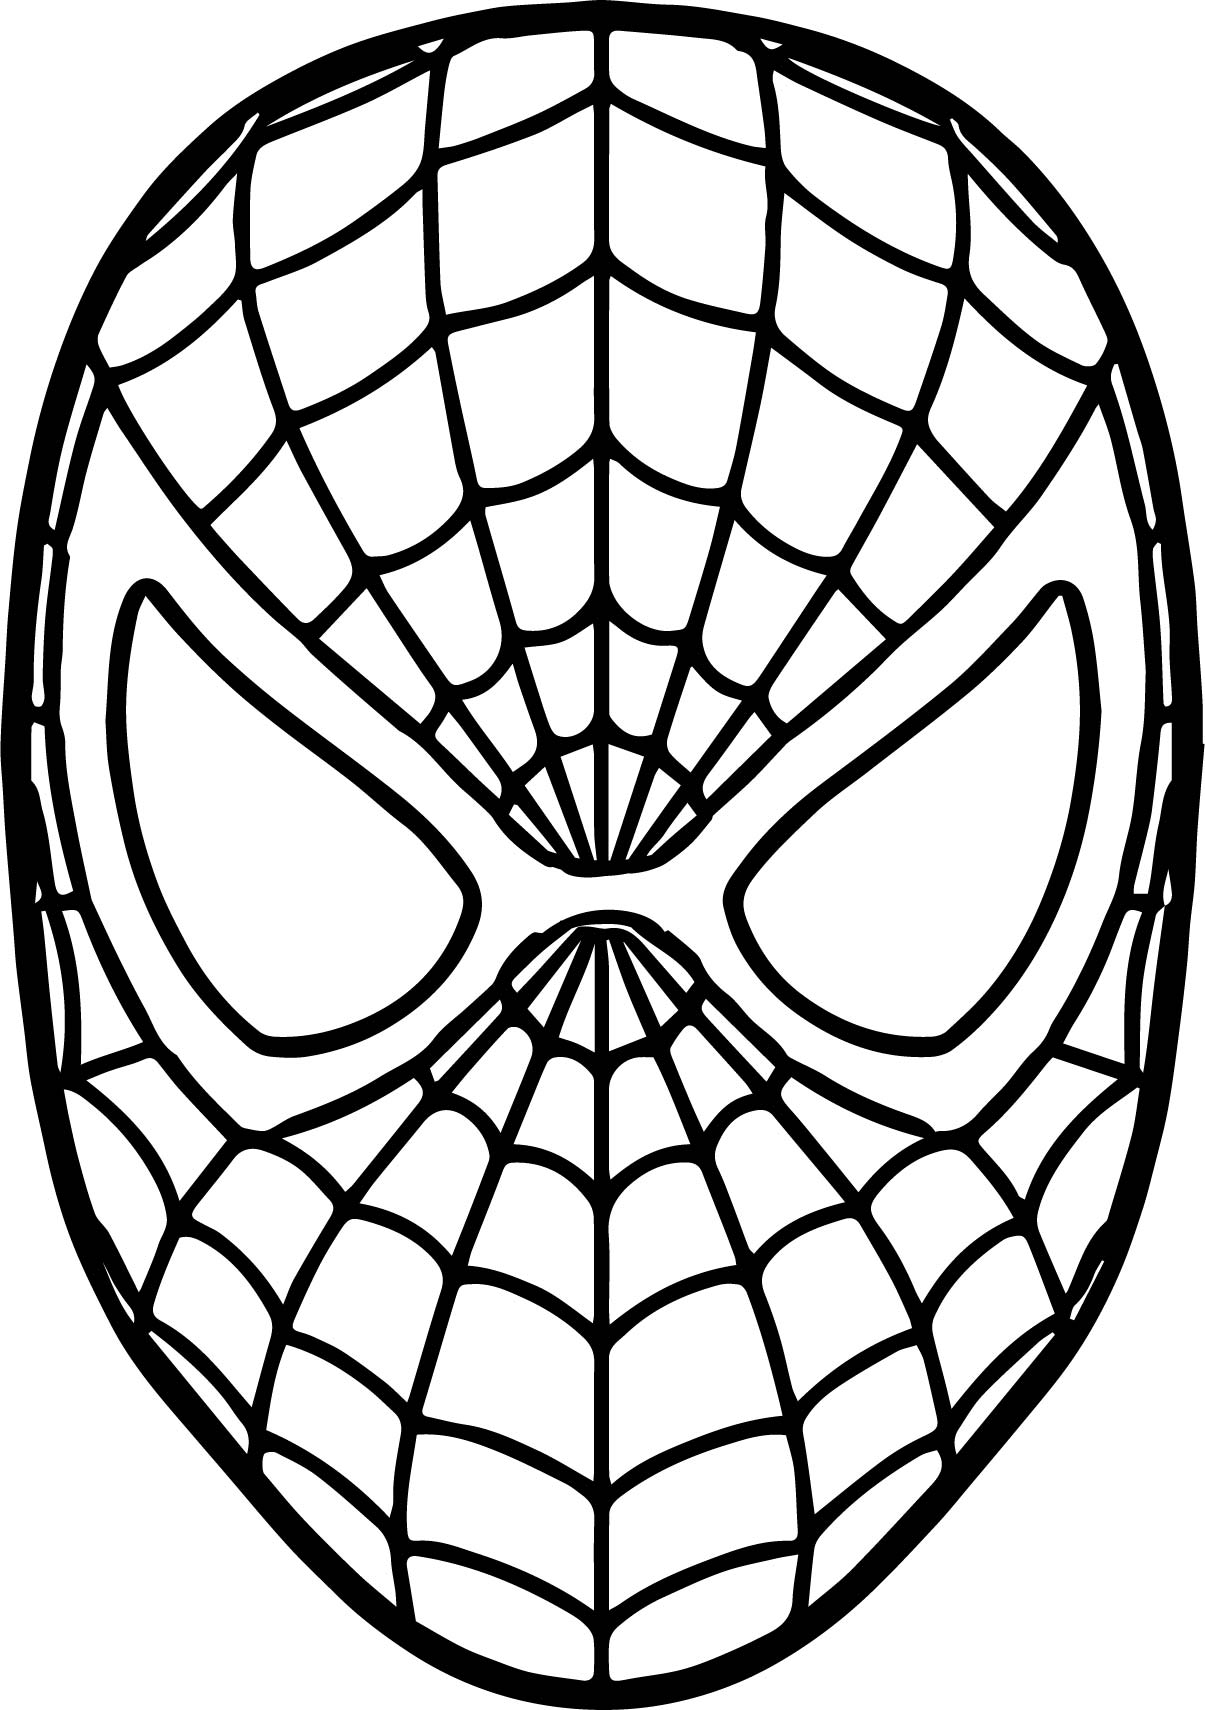 Spider Man Mask Coloring Page Wecoloringpage